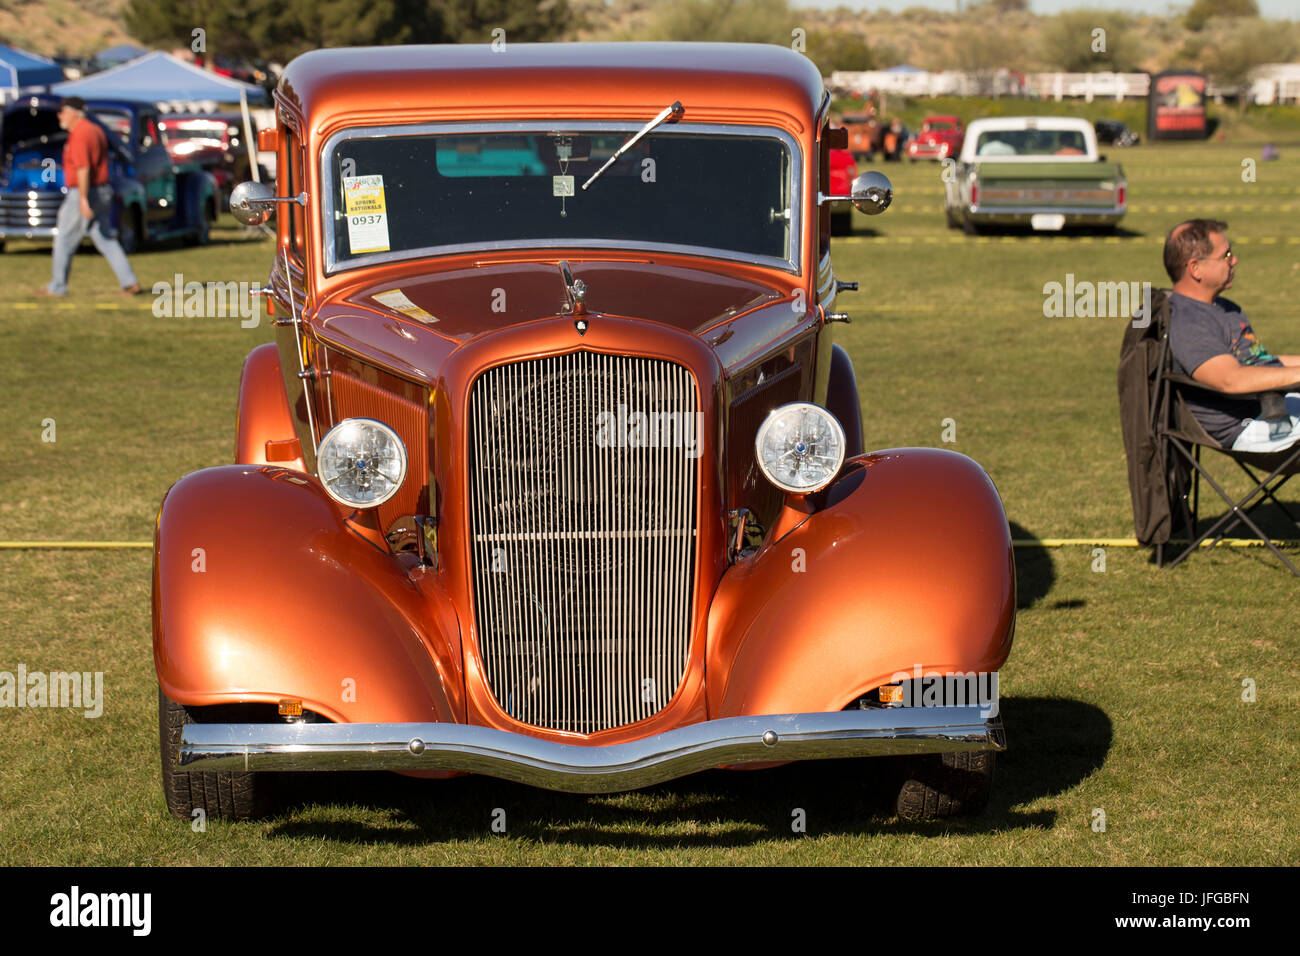 Scottsdale Car Show Stock Photo Alamy - Westworld scottsdale car show